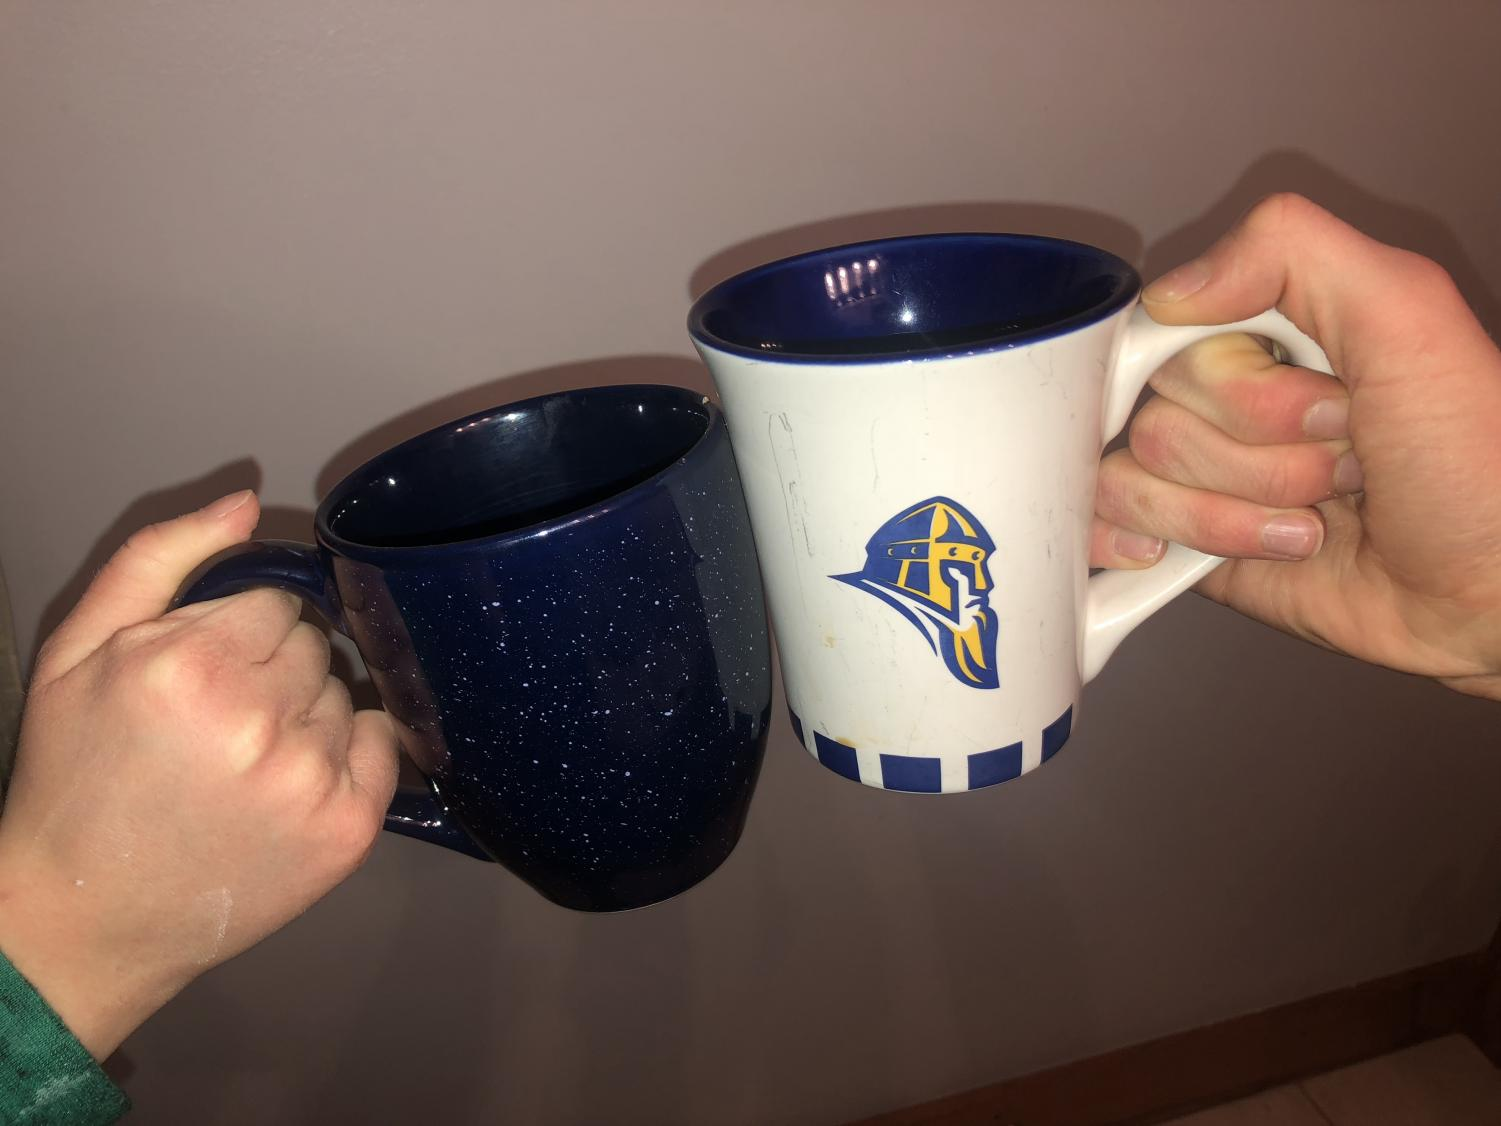 Coffee mugs clink in the commons.